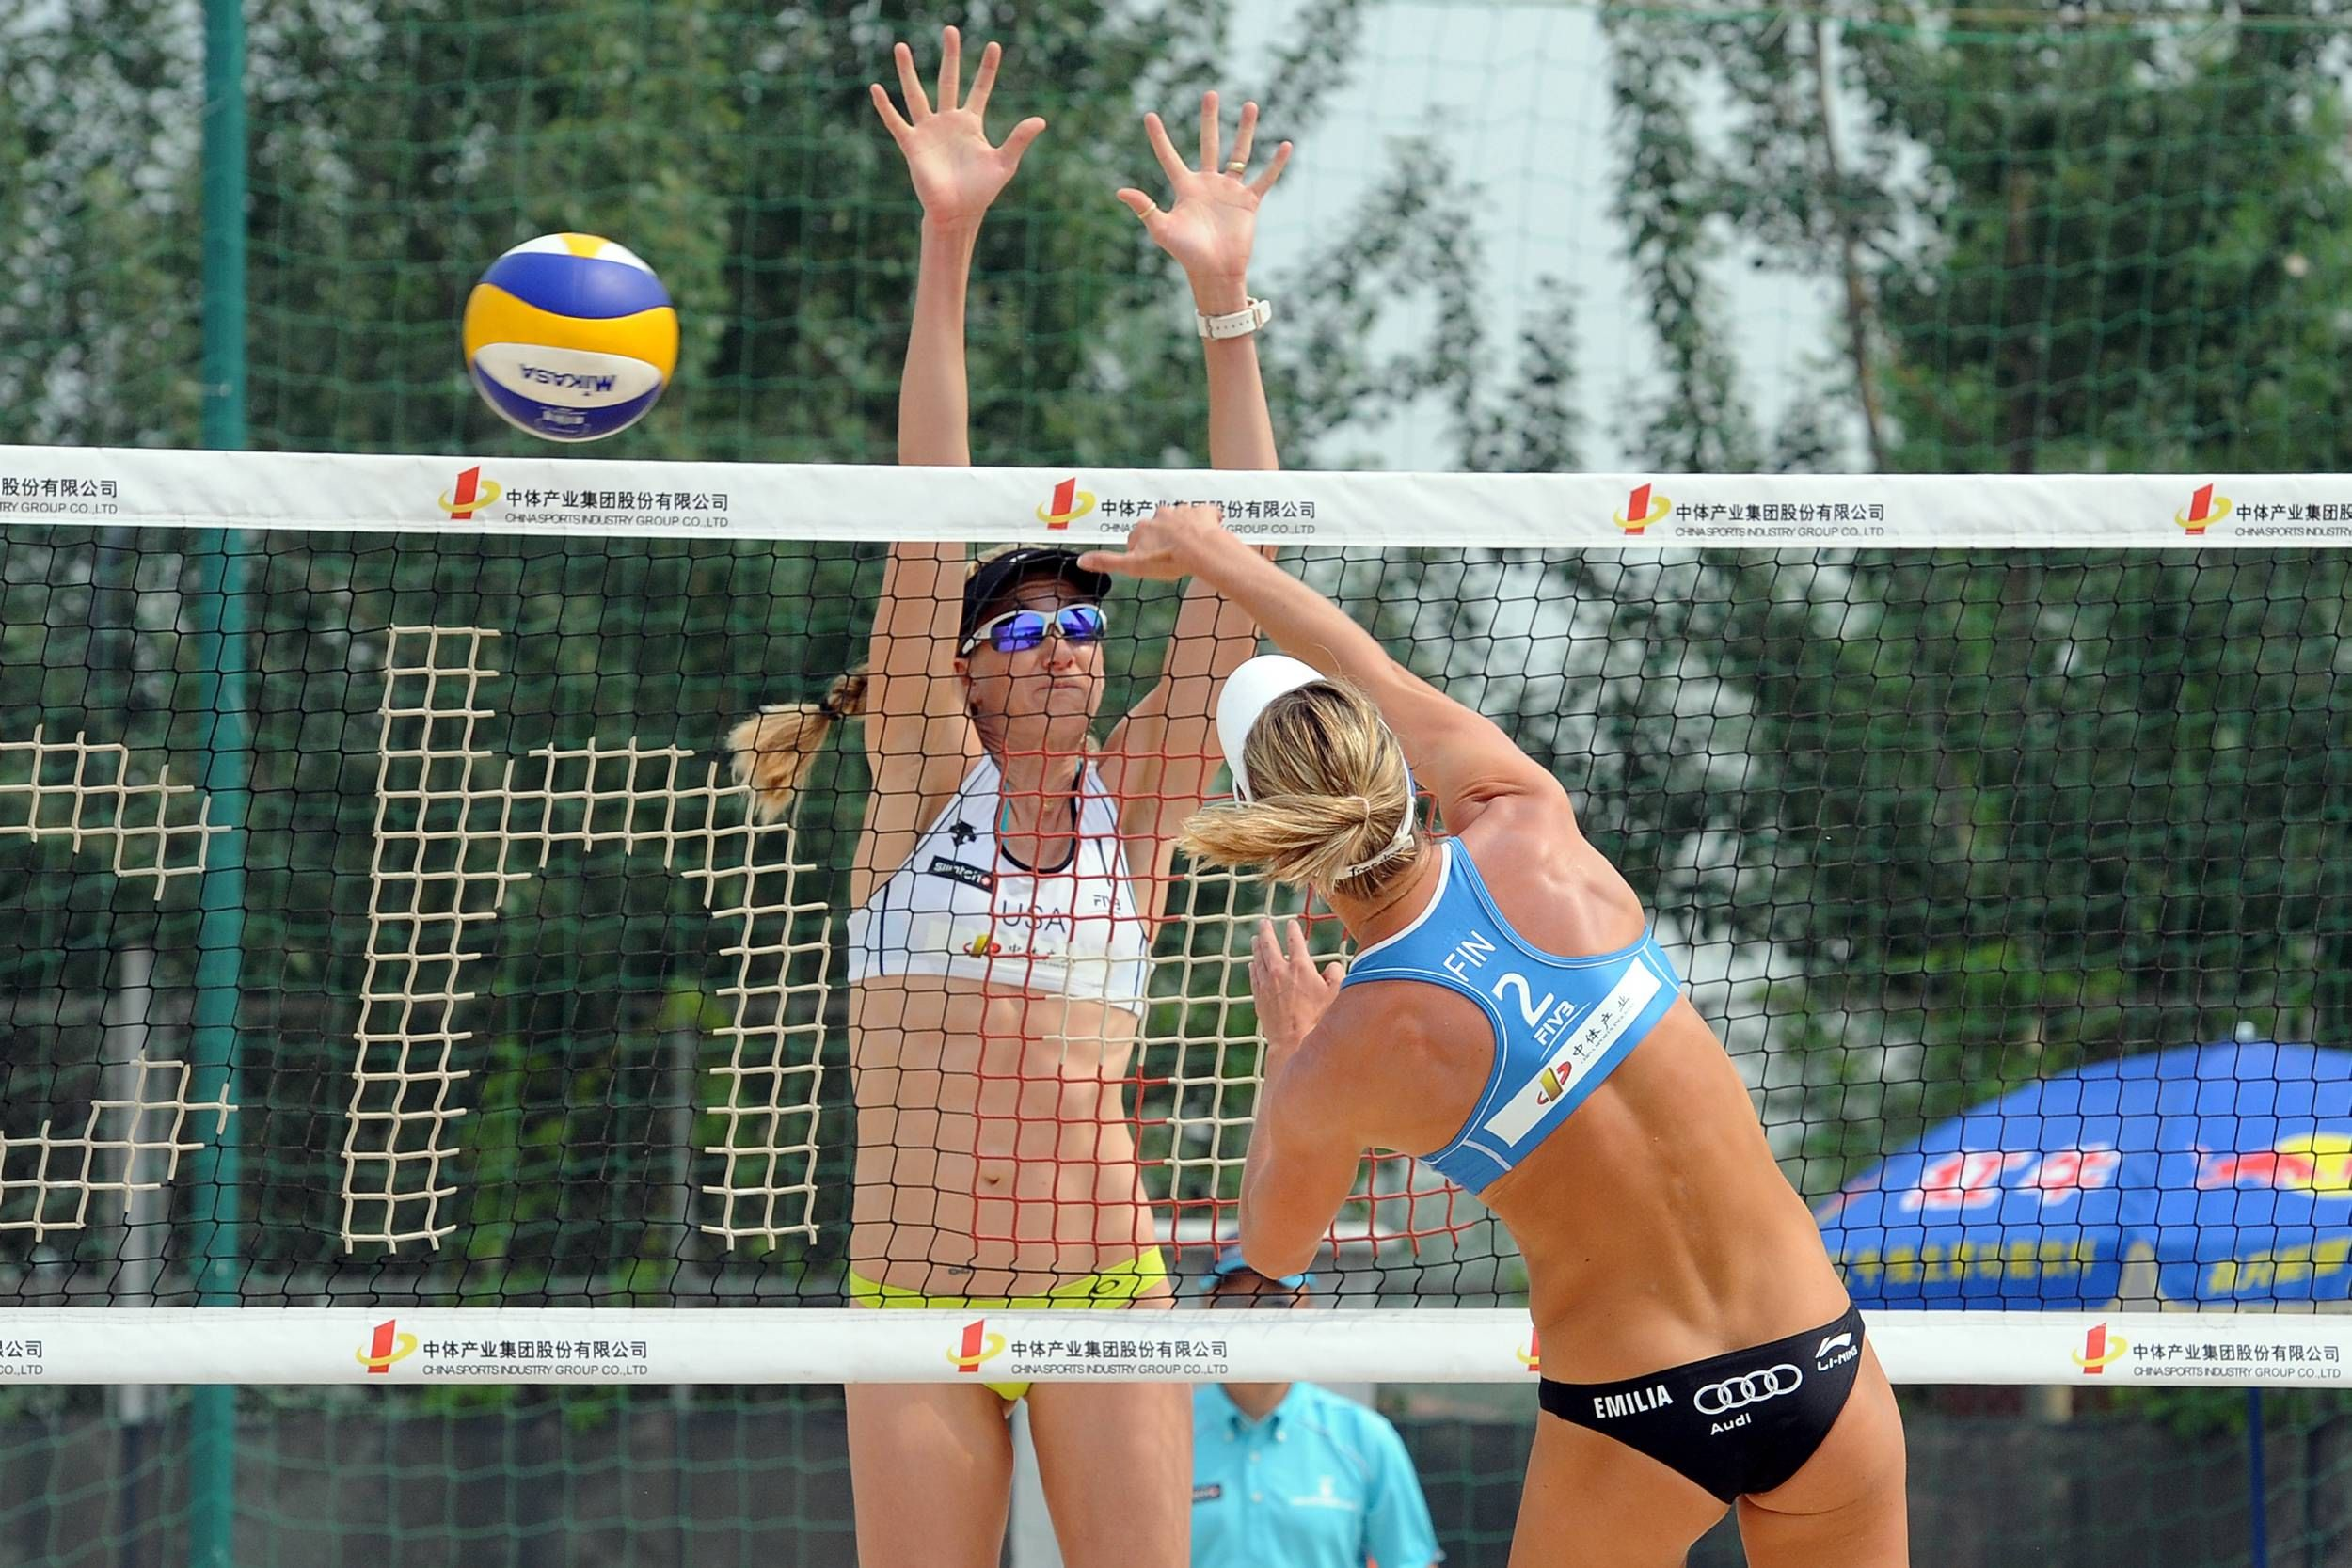 Beach Volleyball Action From The Fivb Beijing Grand Slam Usa S Two Time Olympic Champion Kerri Walsh T Beach Volleyball Fivb Beach Volleyball Olympic Champion